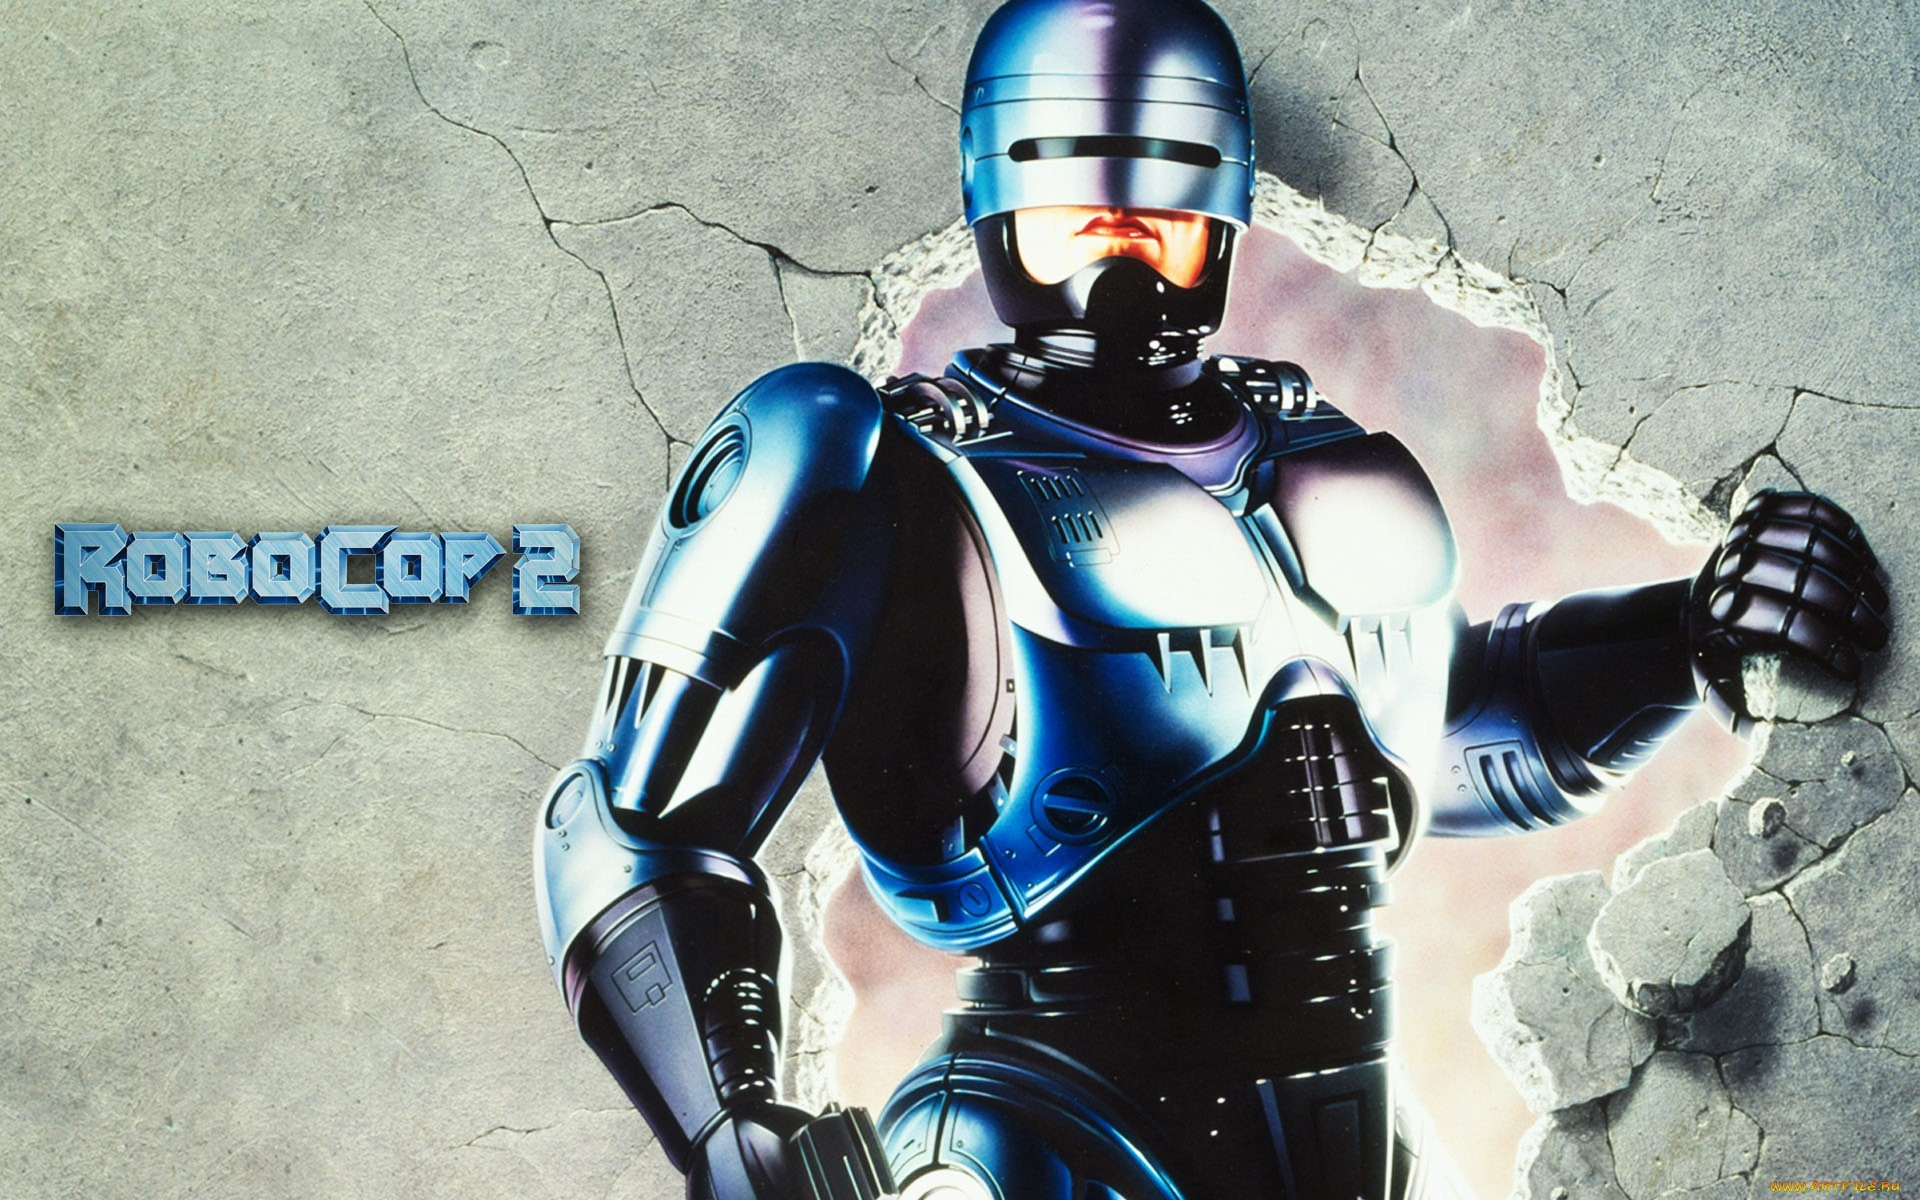 robocop 2 full hd wallpaper and background image | 1920x1200 | id:415880